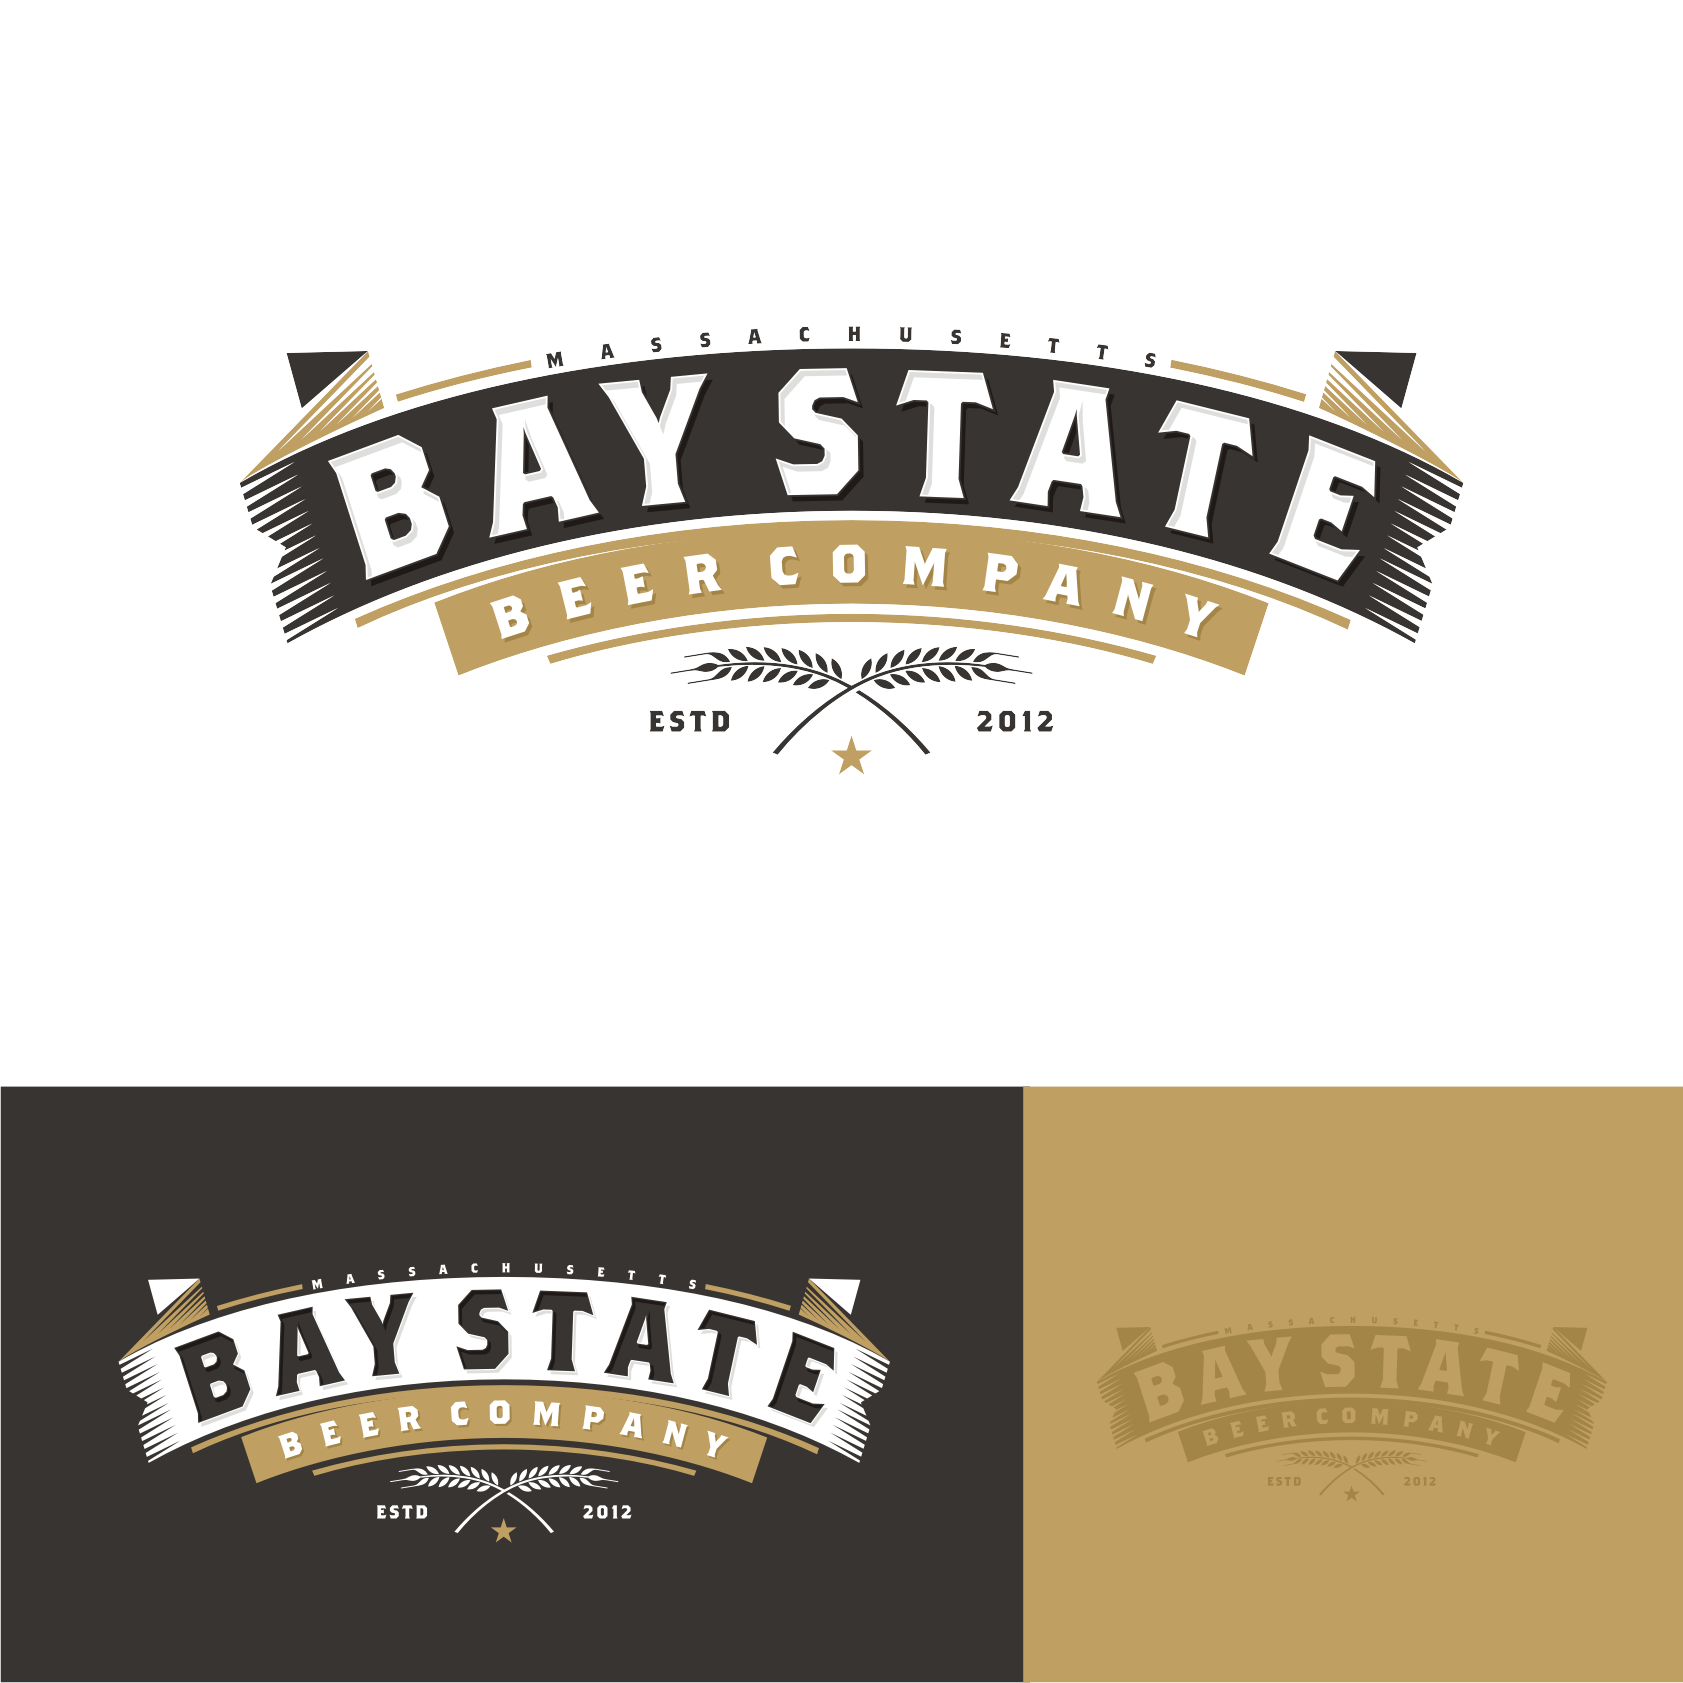 Bay State Beer Company needs a new logo